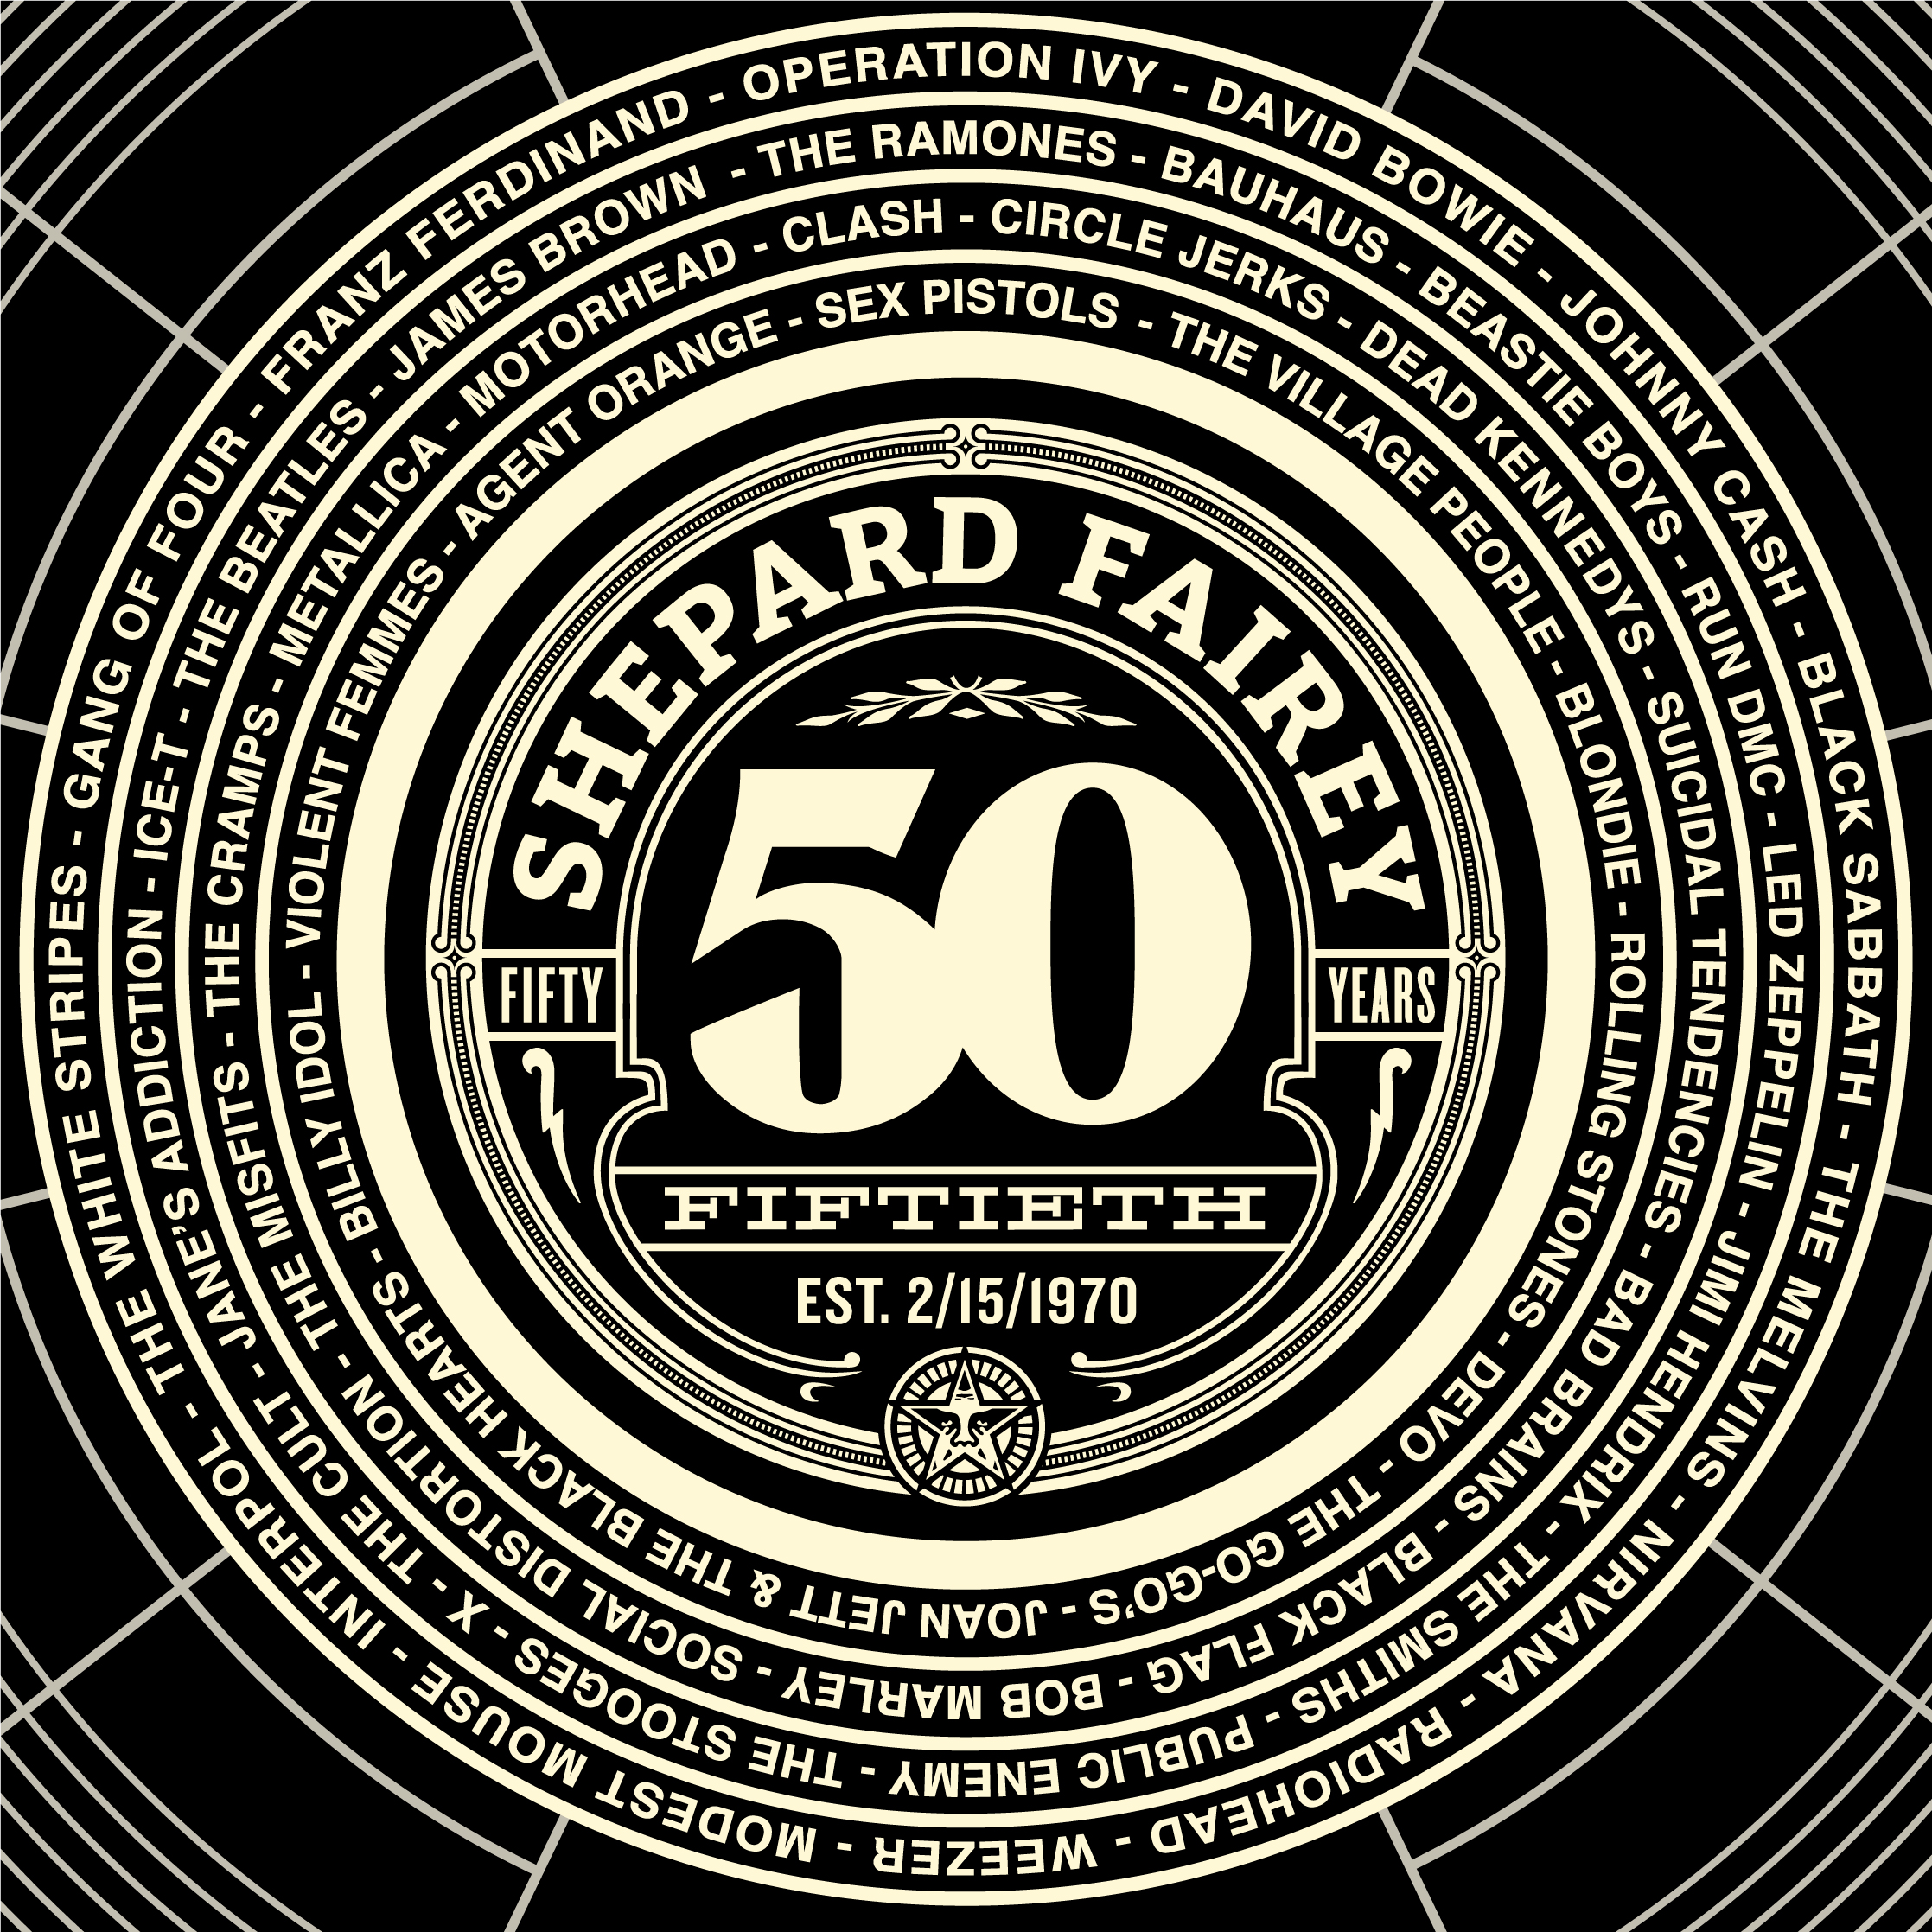 50 At 50 The Soundtrack Of Shepard Fairey Obey Giant